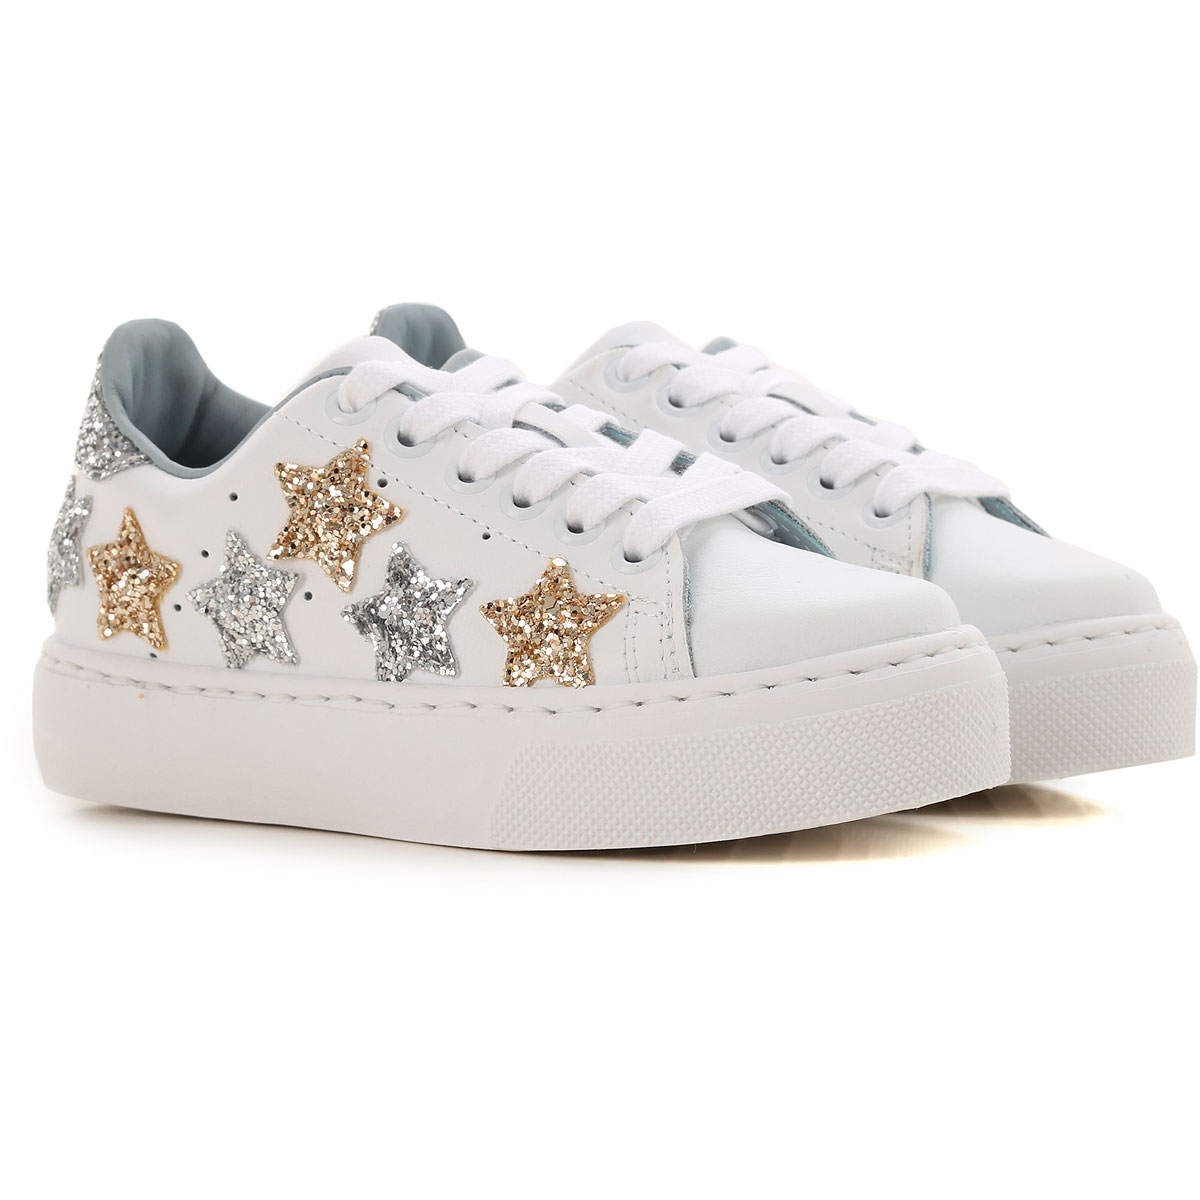 Image of Chiara Ferragni Kids Shoes for Girls, White, Leather, 2017, 28 29 30 31 32 33 34 35 36